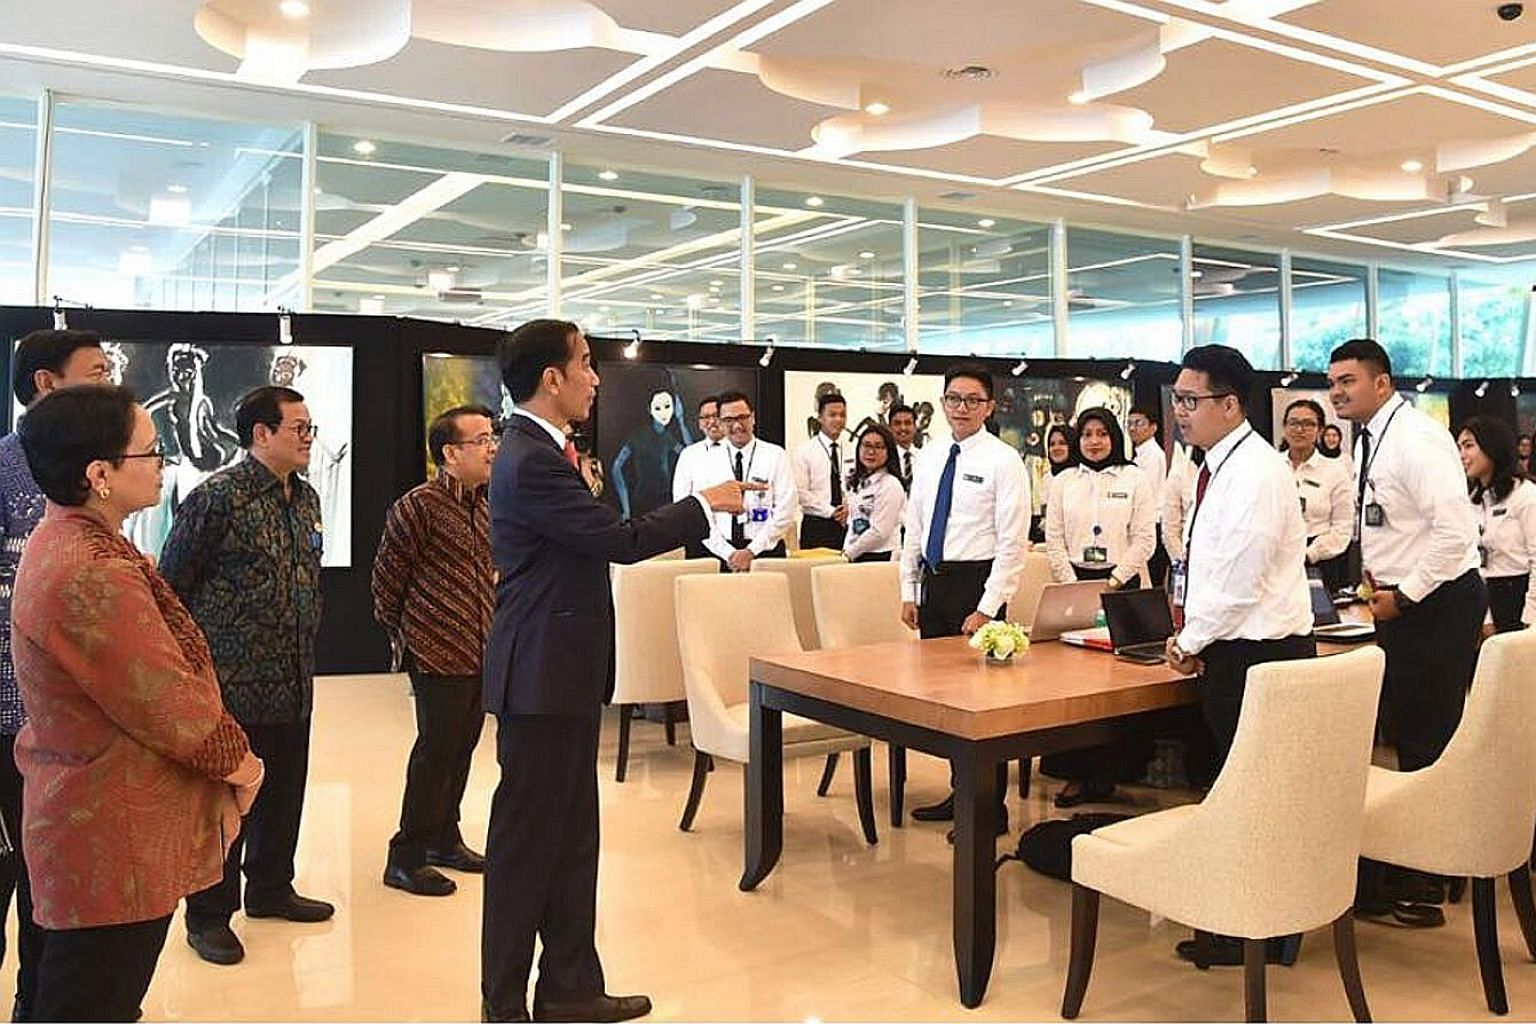 Indonesia's President Joko Widodo with (from left) Foreign Minister Retno Marsudi, Coordinating Security Minister Wiranto (partly hidden), Cabinet Secretary Pramono Anung and State Secretariat Minister Pratikno yesterday urged his diplomats to do mor